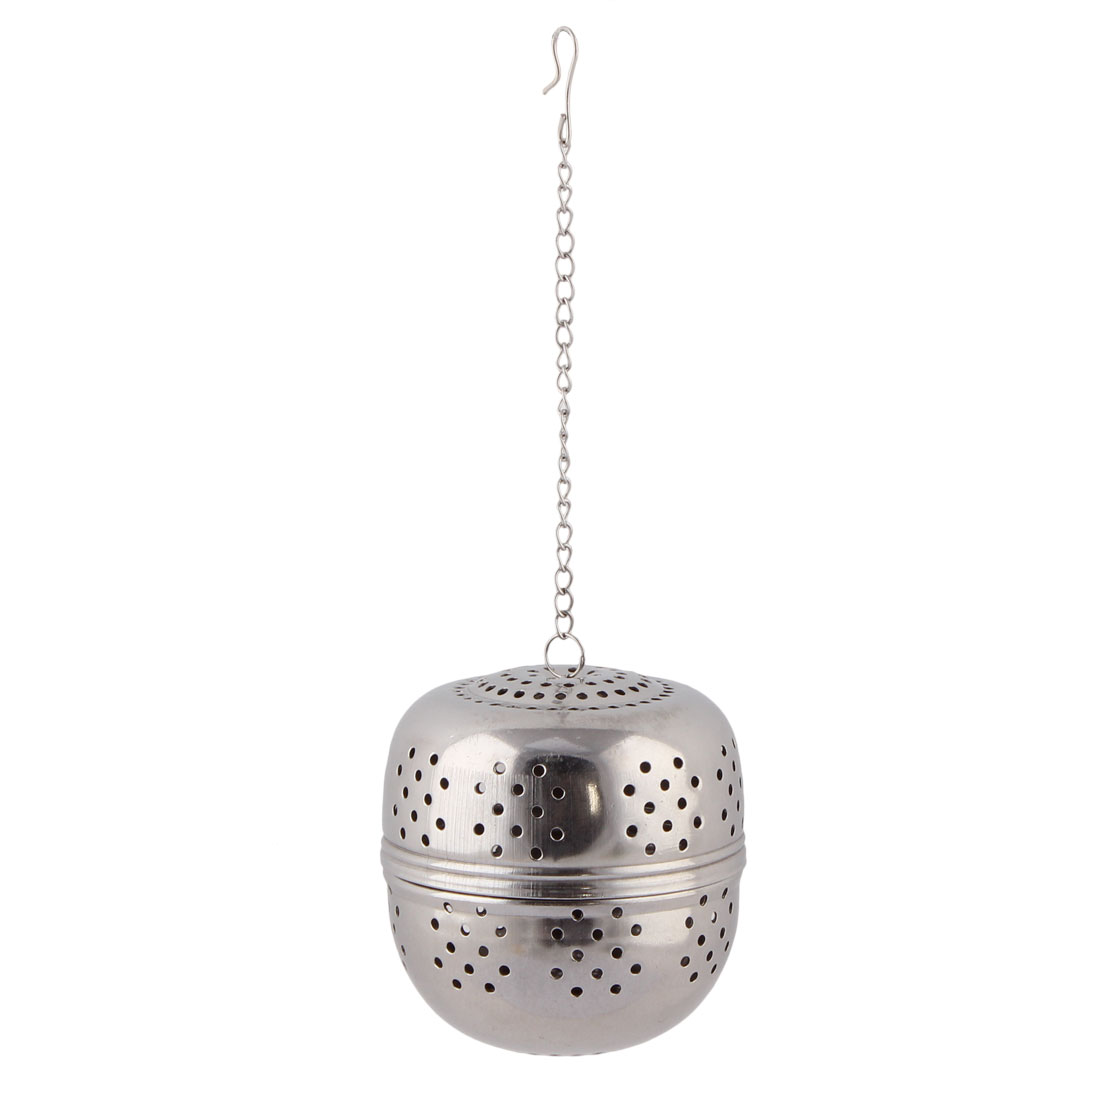 Kitchen Stainless Steel Loose Leaf Tea Spice Perfume Infuser Strainer Ball 4.5cm Dia